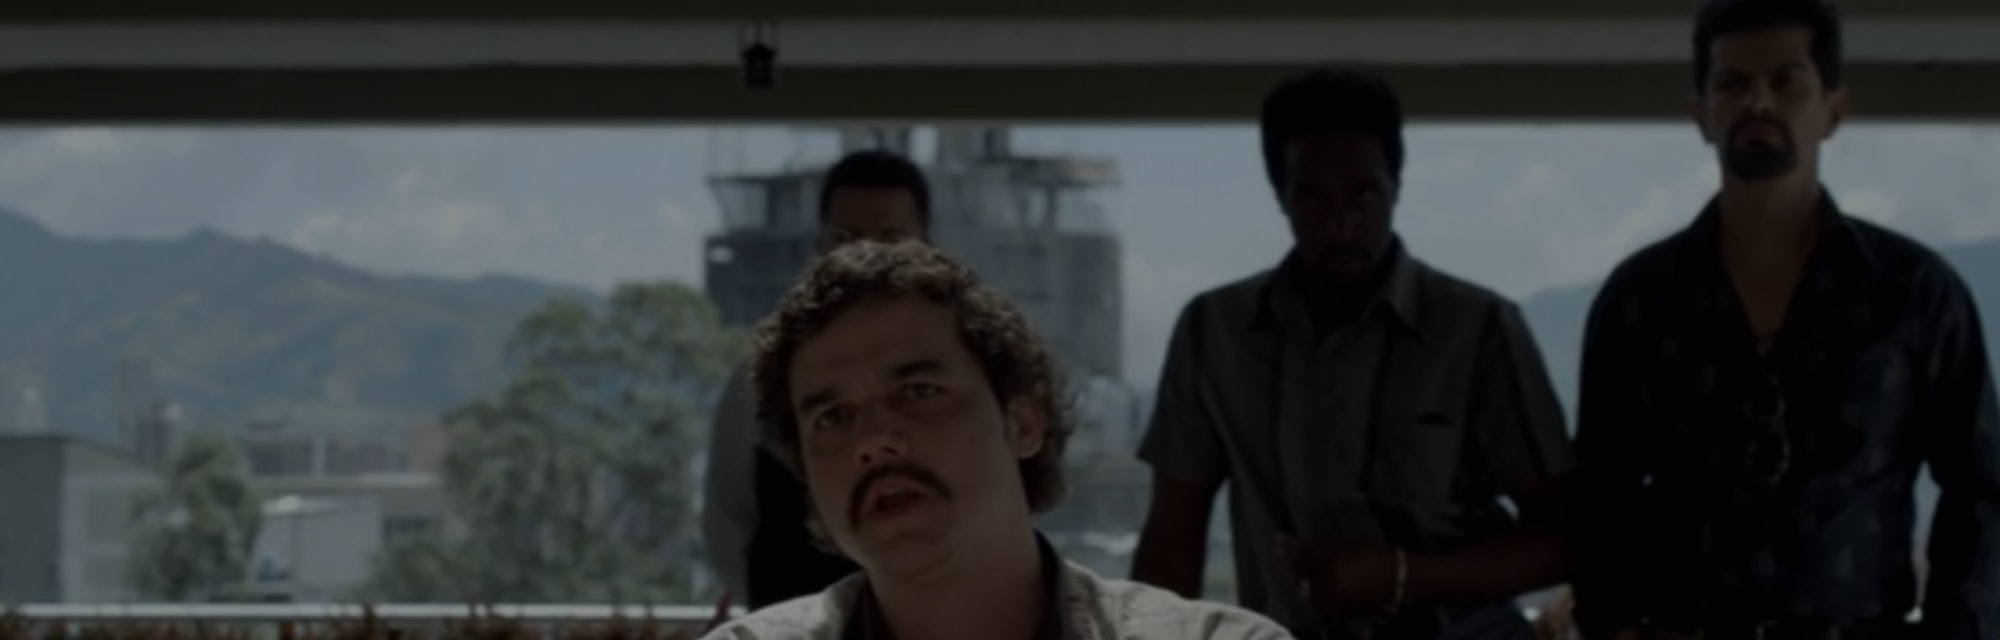 Narcos Episode 2 Shows The Machiavellian Talents Of Pablo Escobar